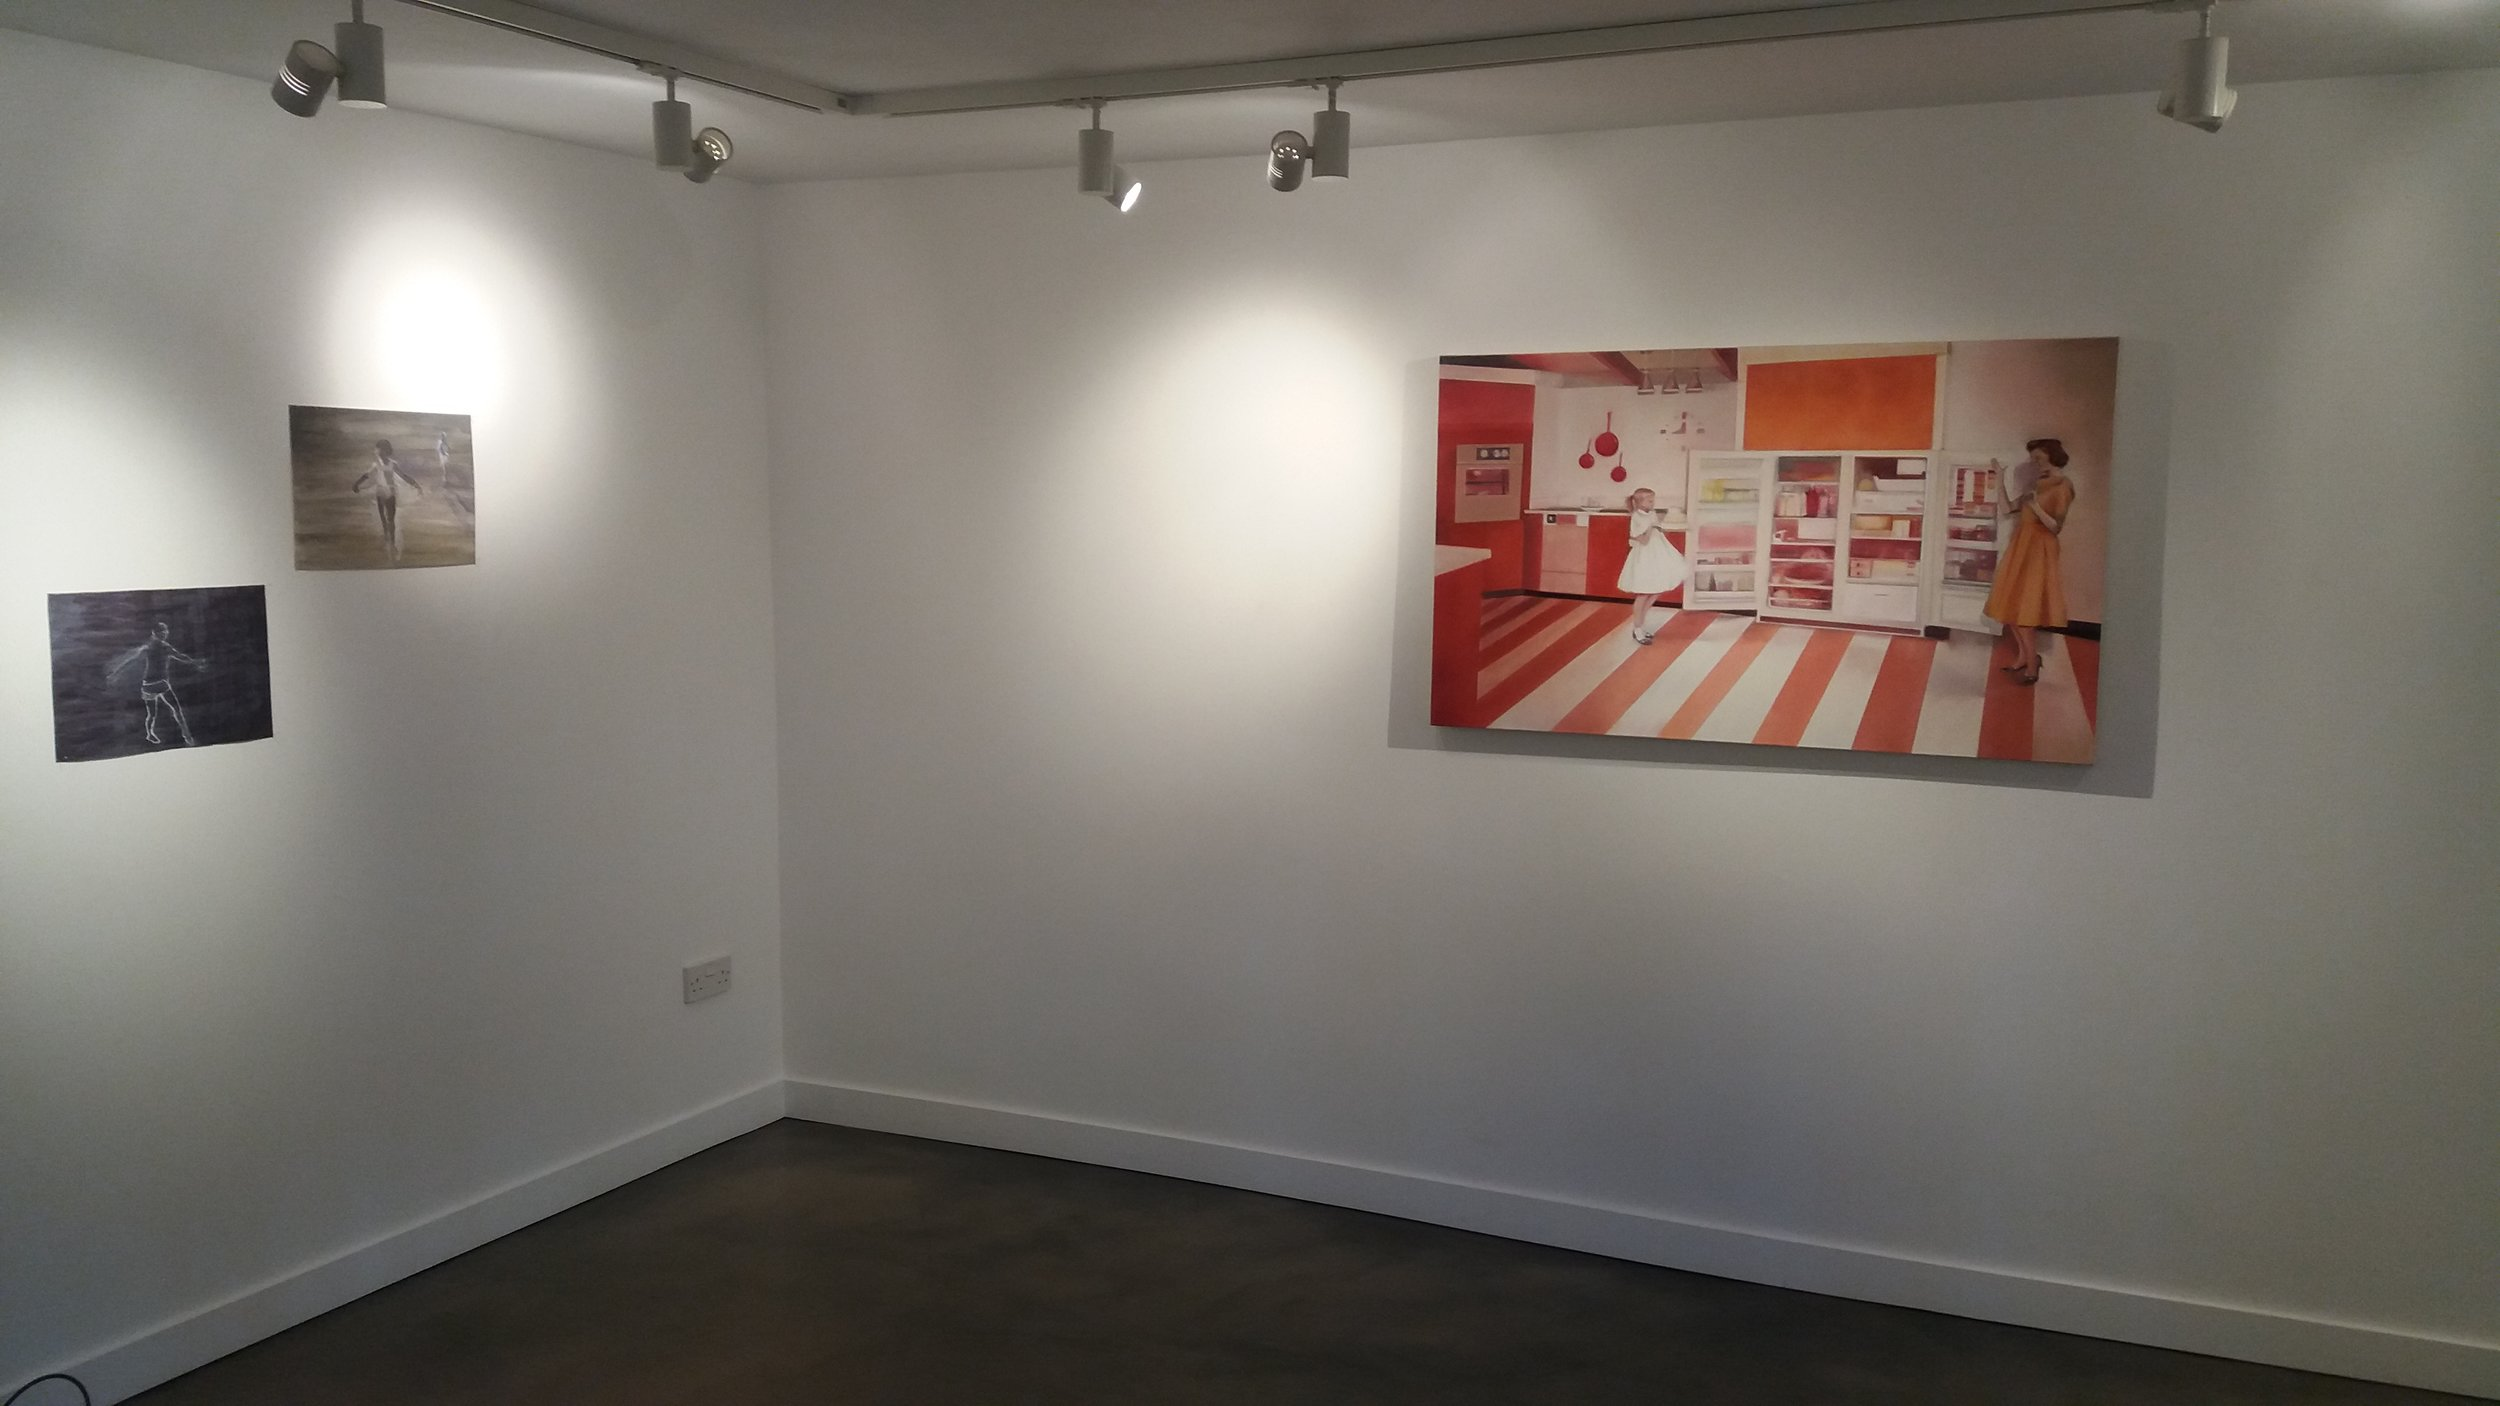 The exhibition at Tripp Gallery